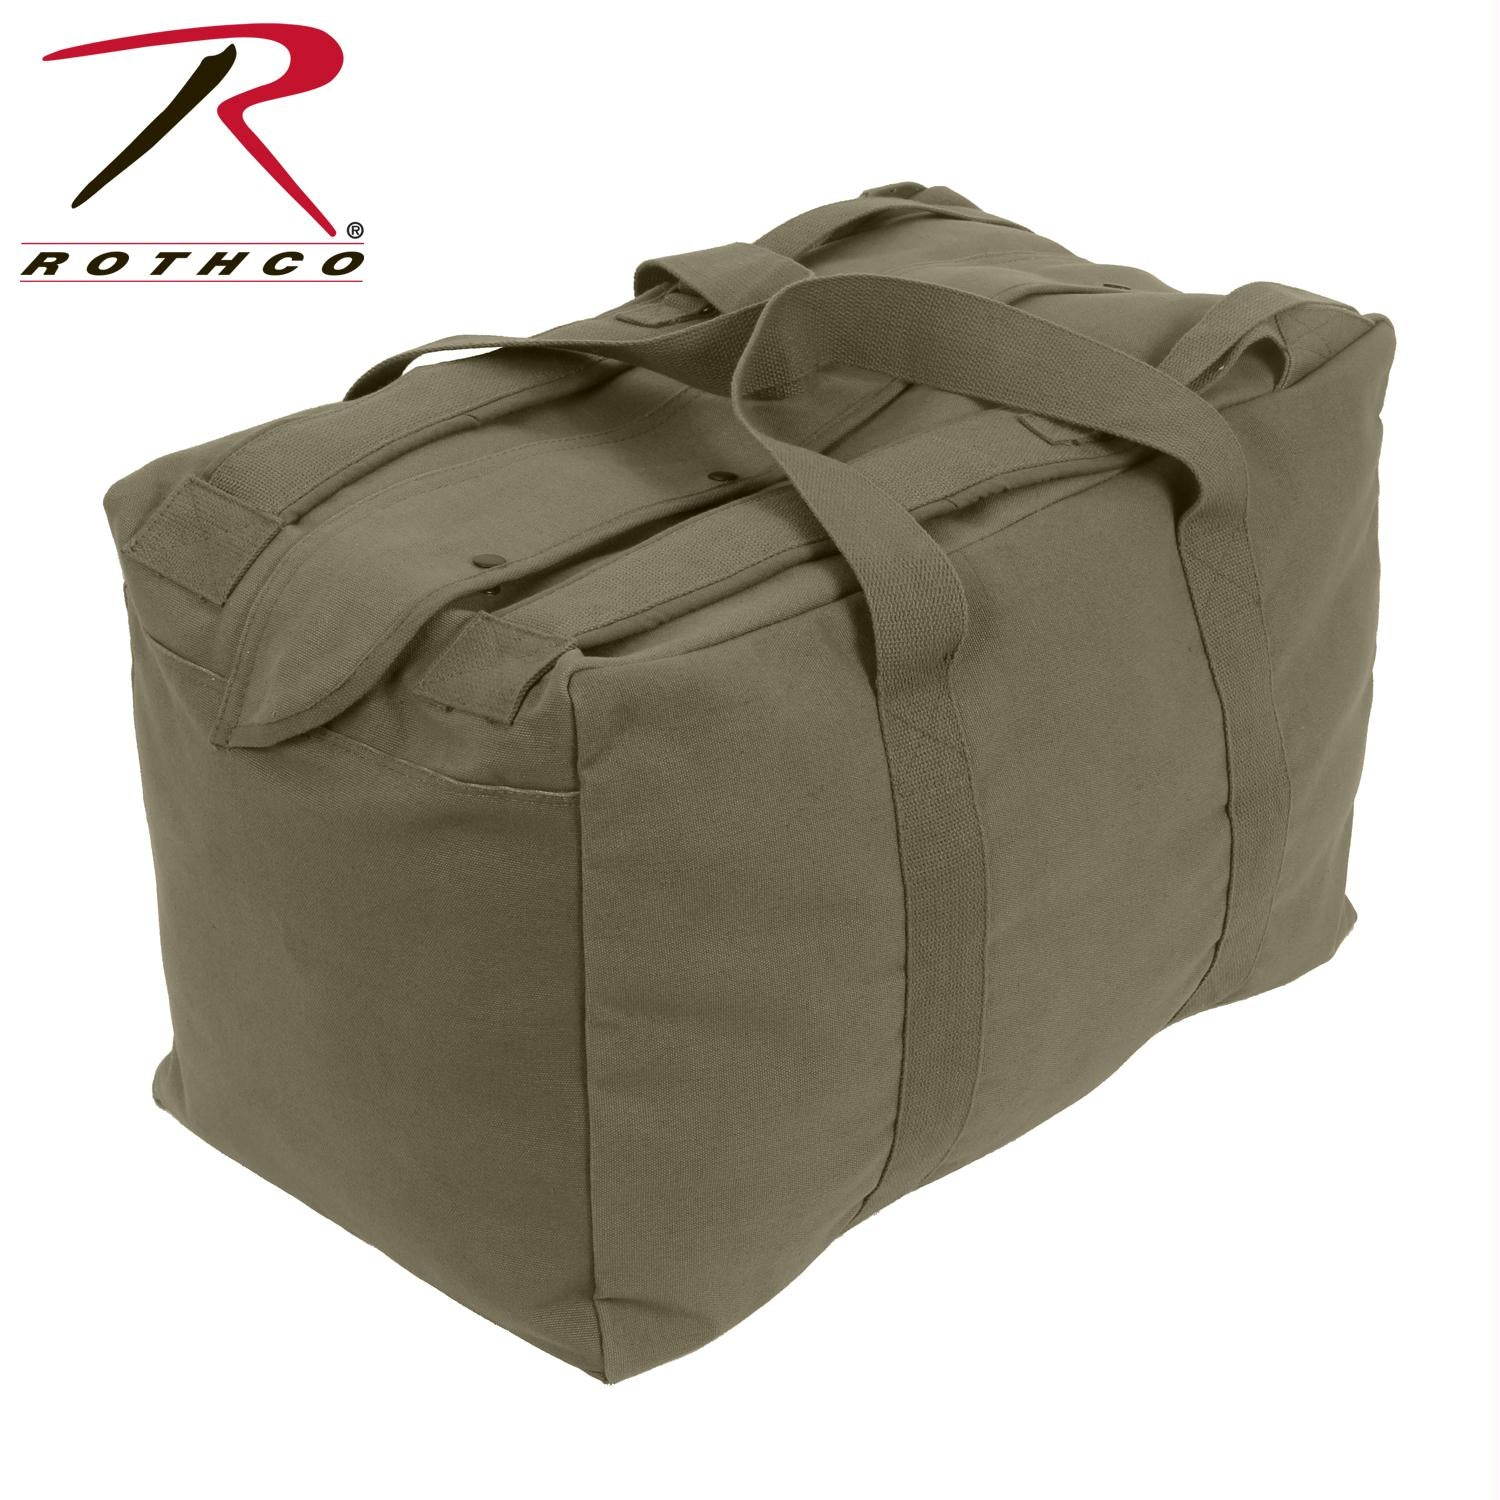 Rothco Canvas Mossad Type Tactical Canvas Cargo Bag